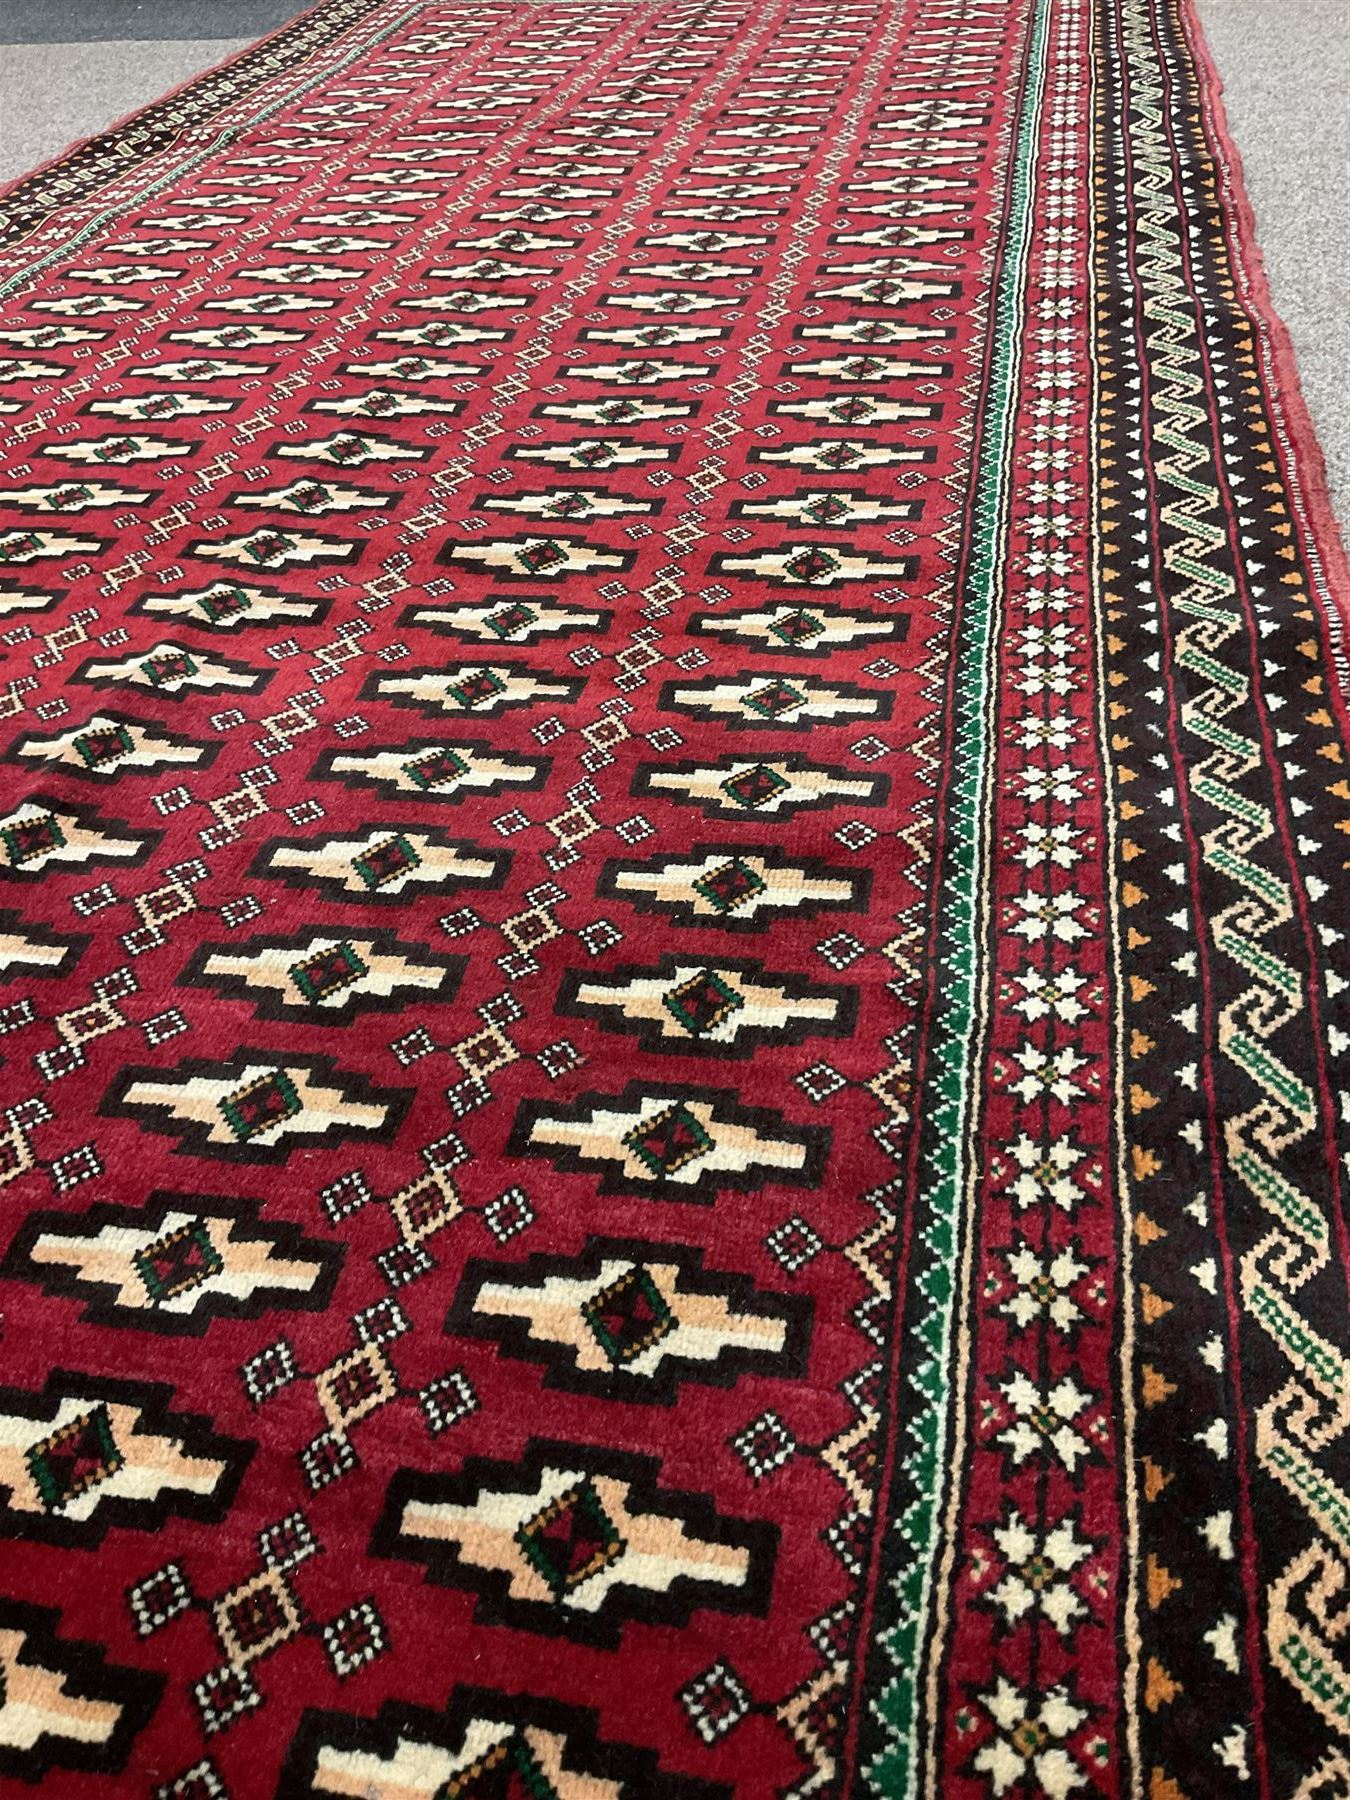 Persian red ground rug - Image 2 of 3